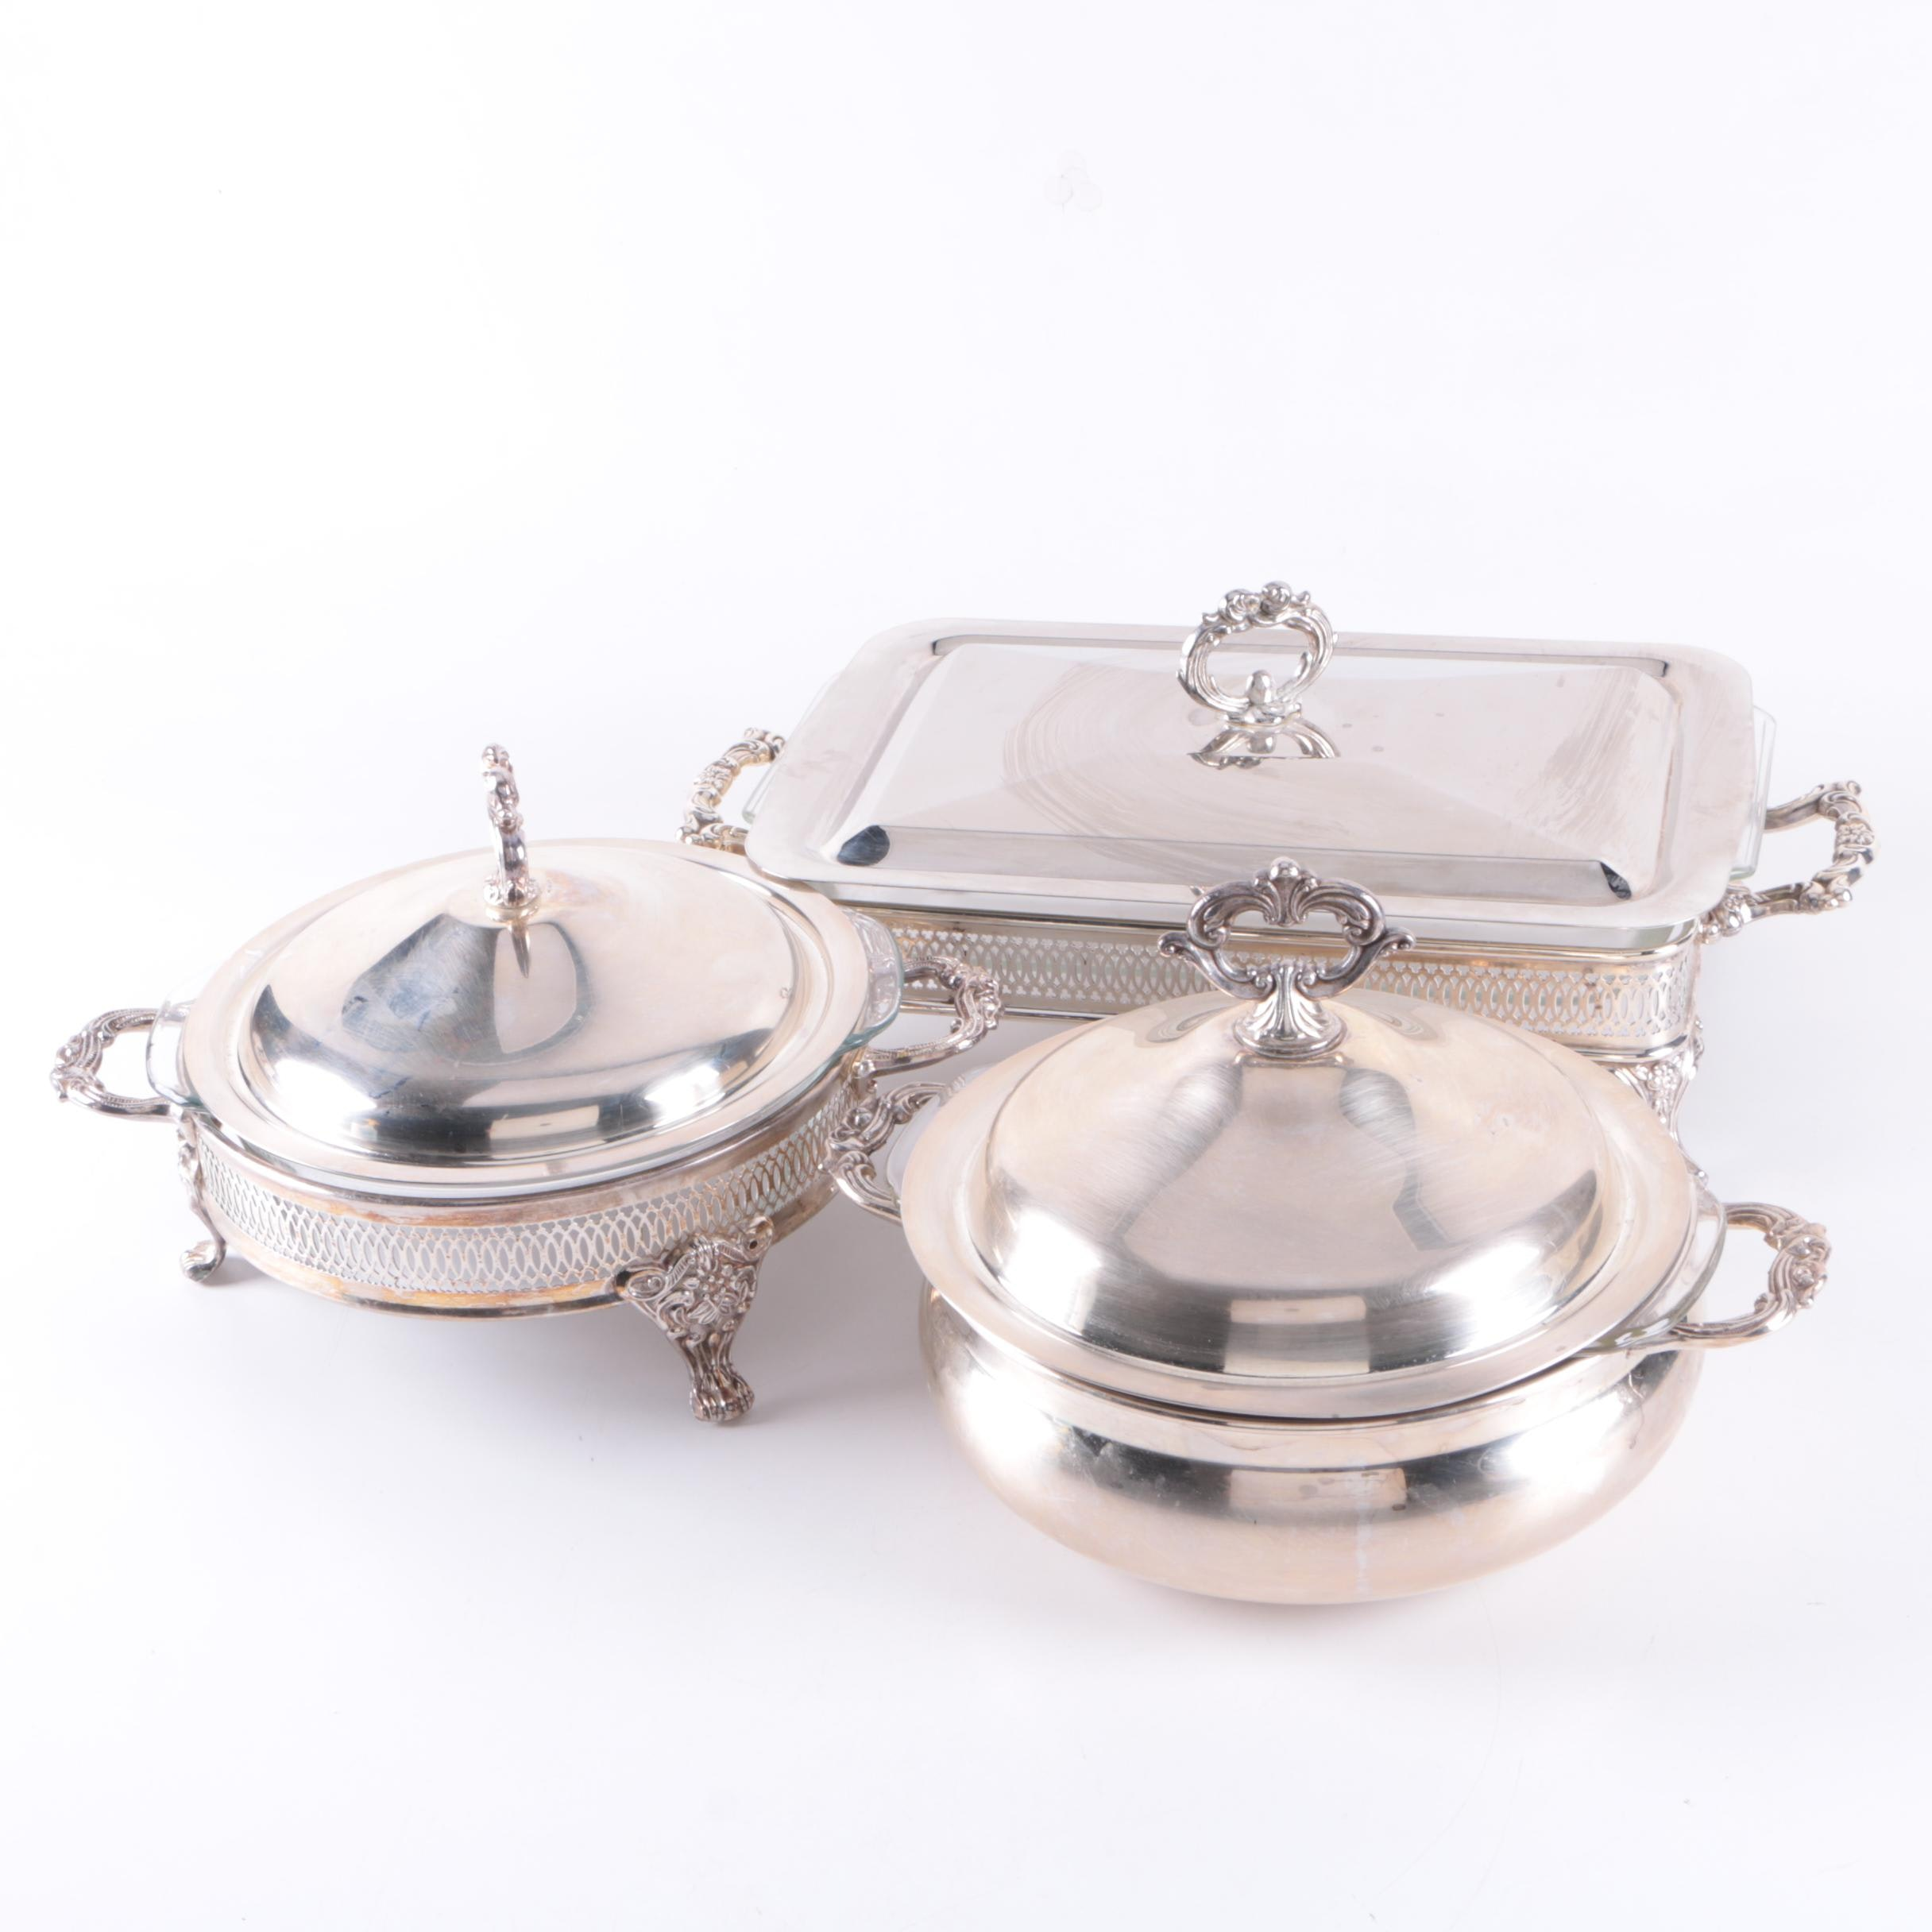 Silver Plate Chafing and Serving Dishes Featuring Anchor Hocking Glass Inserts